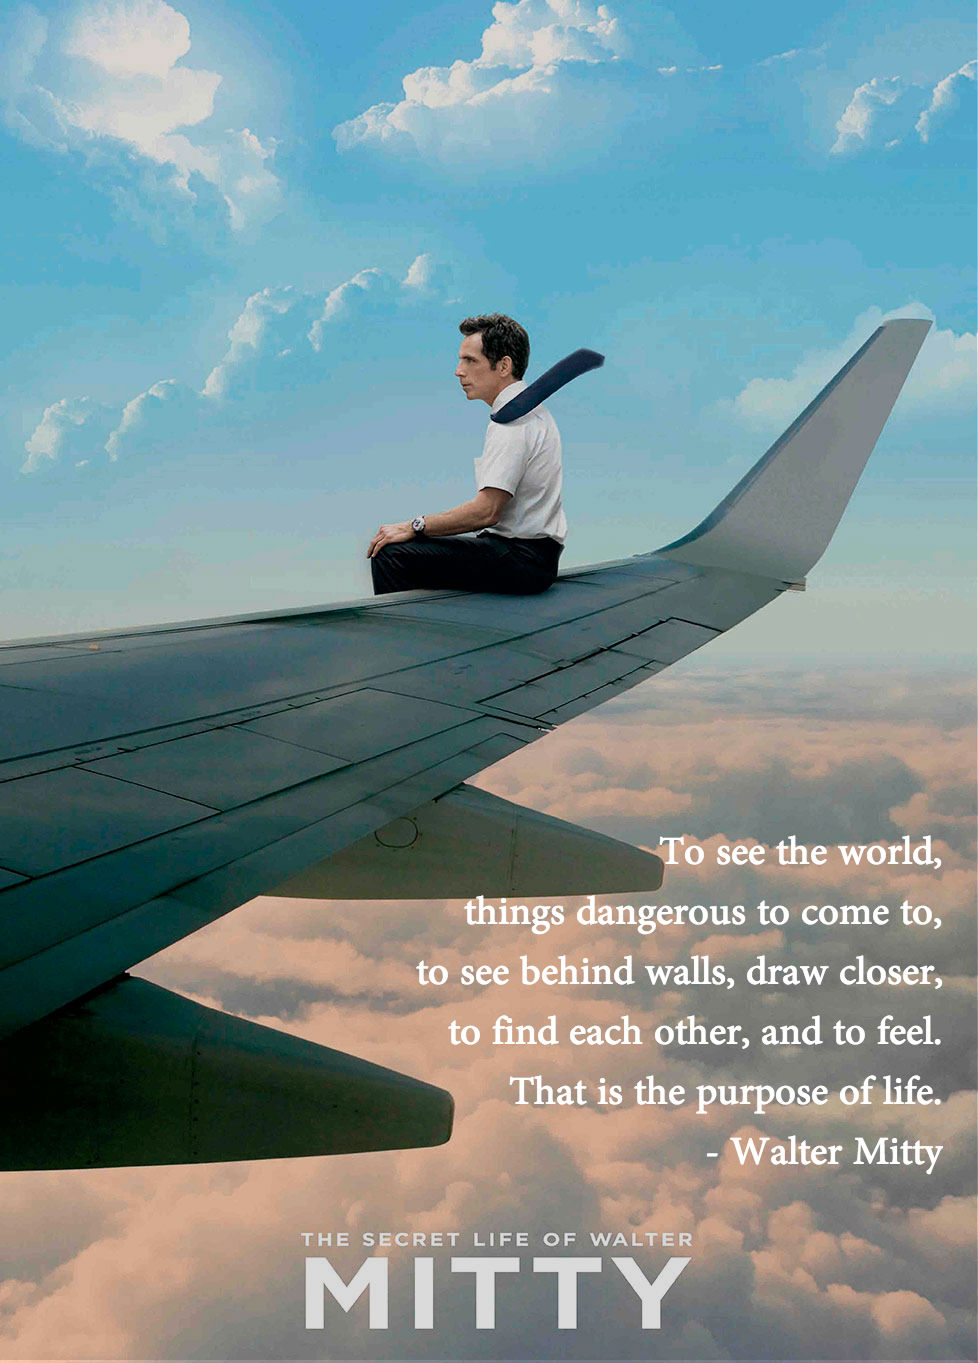 Quotes Purpose Of Life Quotes From The Secret Life Of Walter Mitty  Soa Inspired